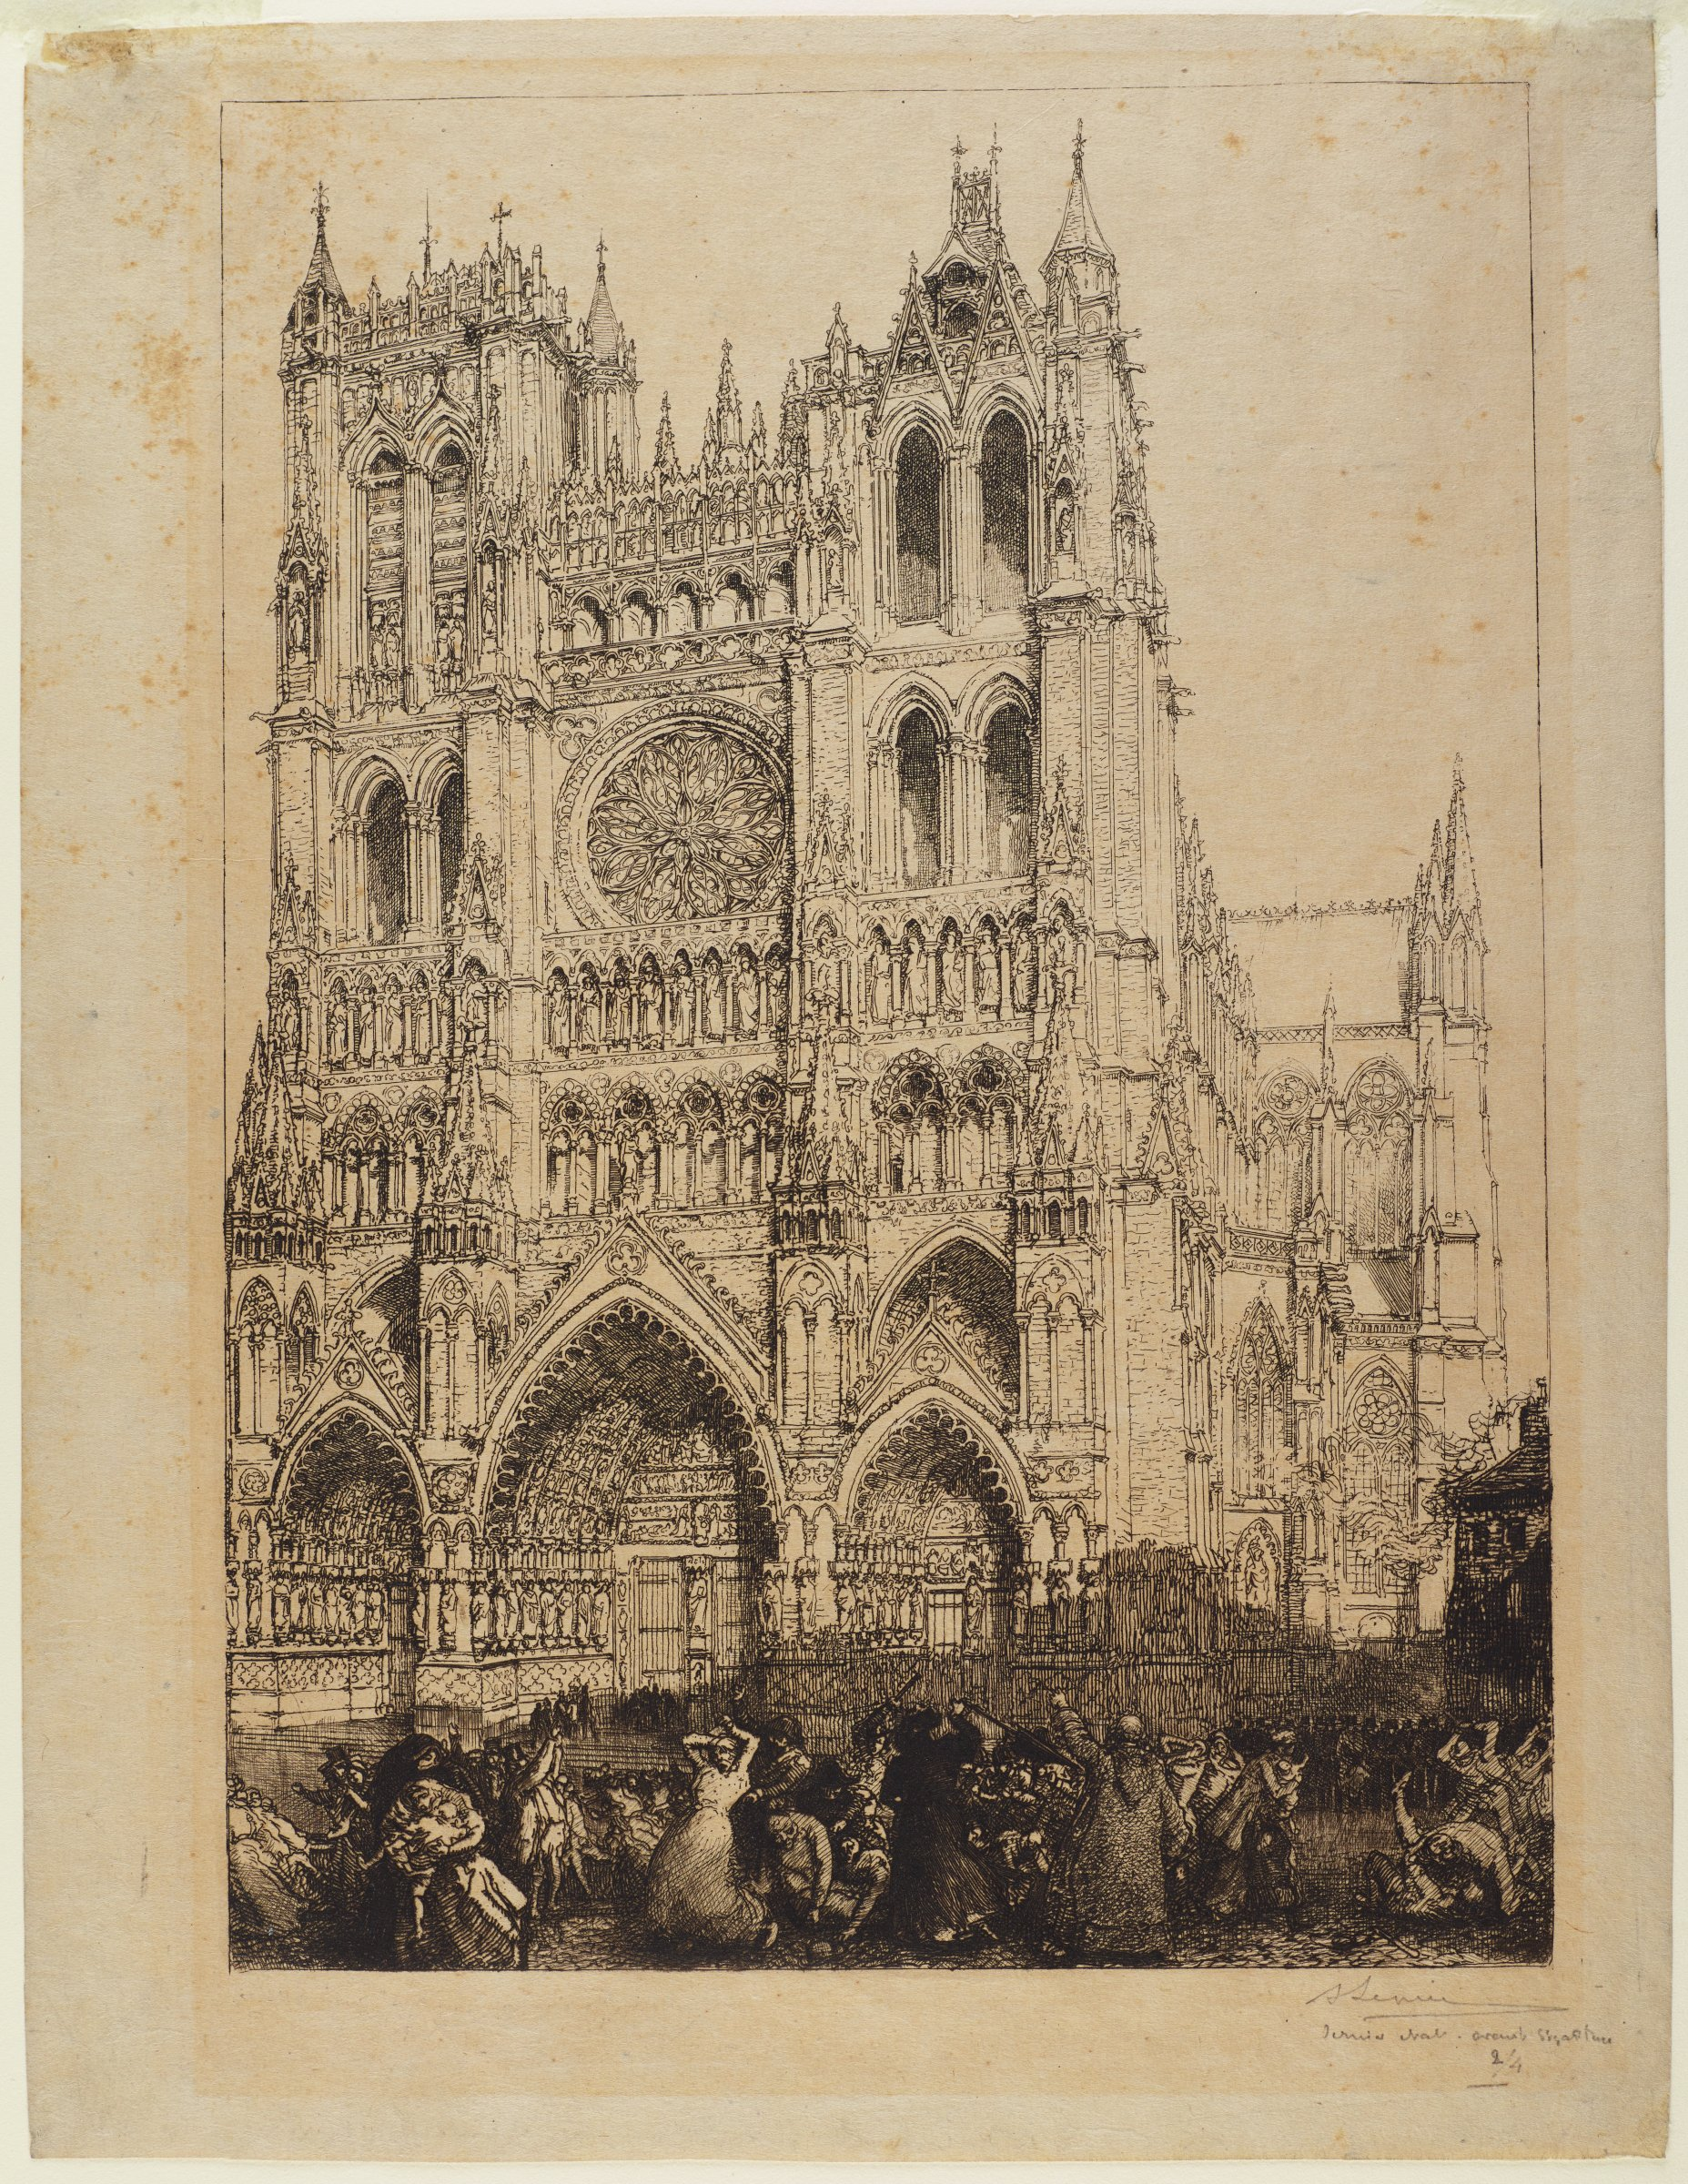 Amiens Cathedral, shown at an angle, stands brightly behind a rioting crowd that is primariy shown in shadow.